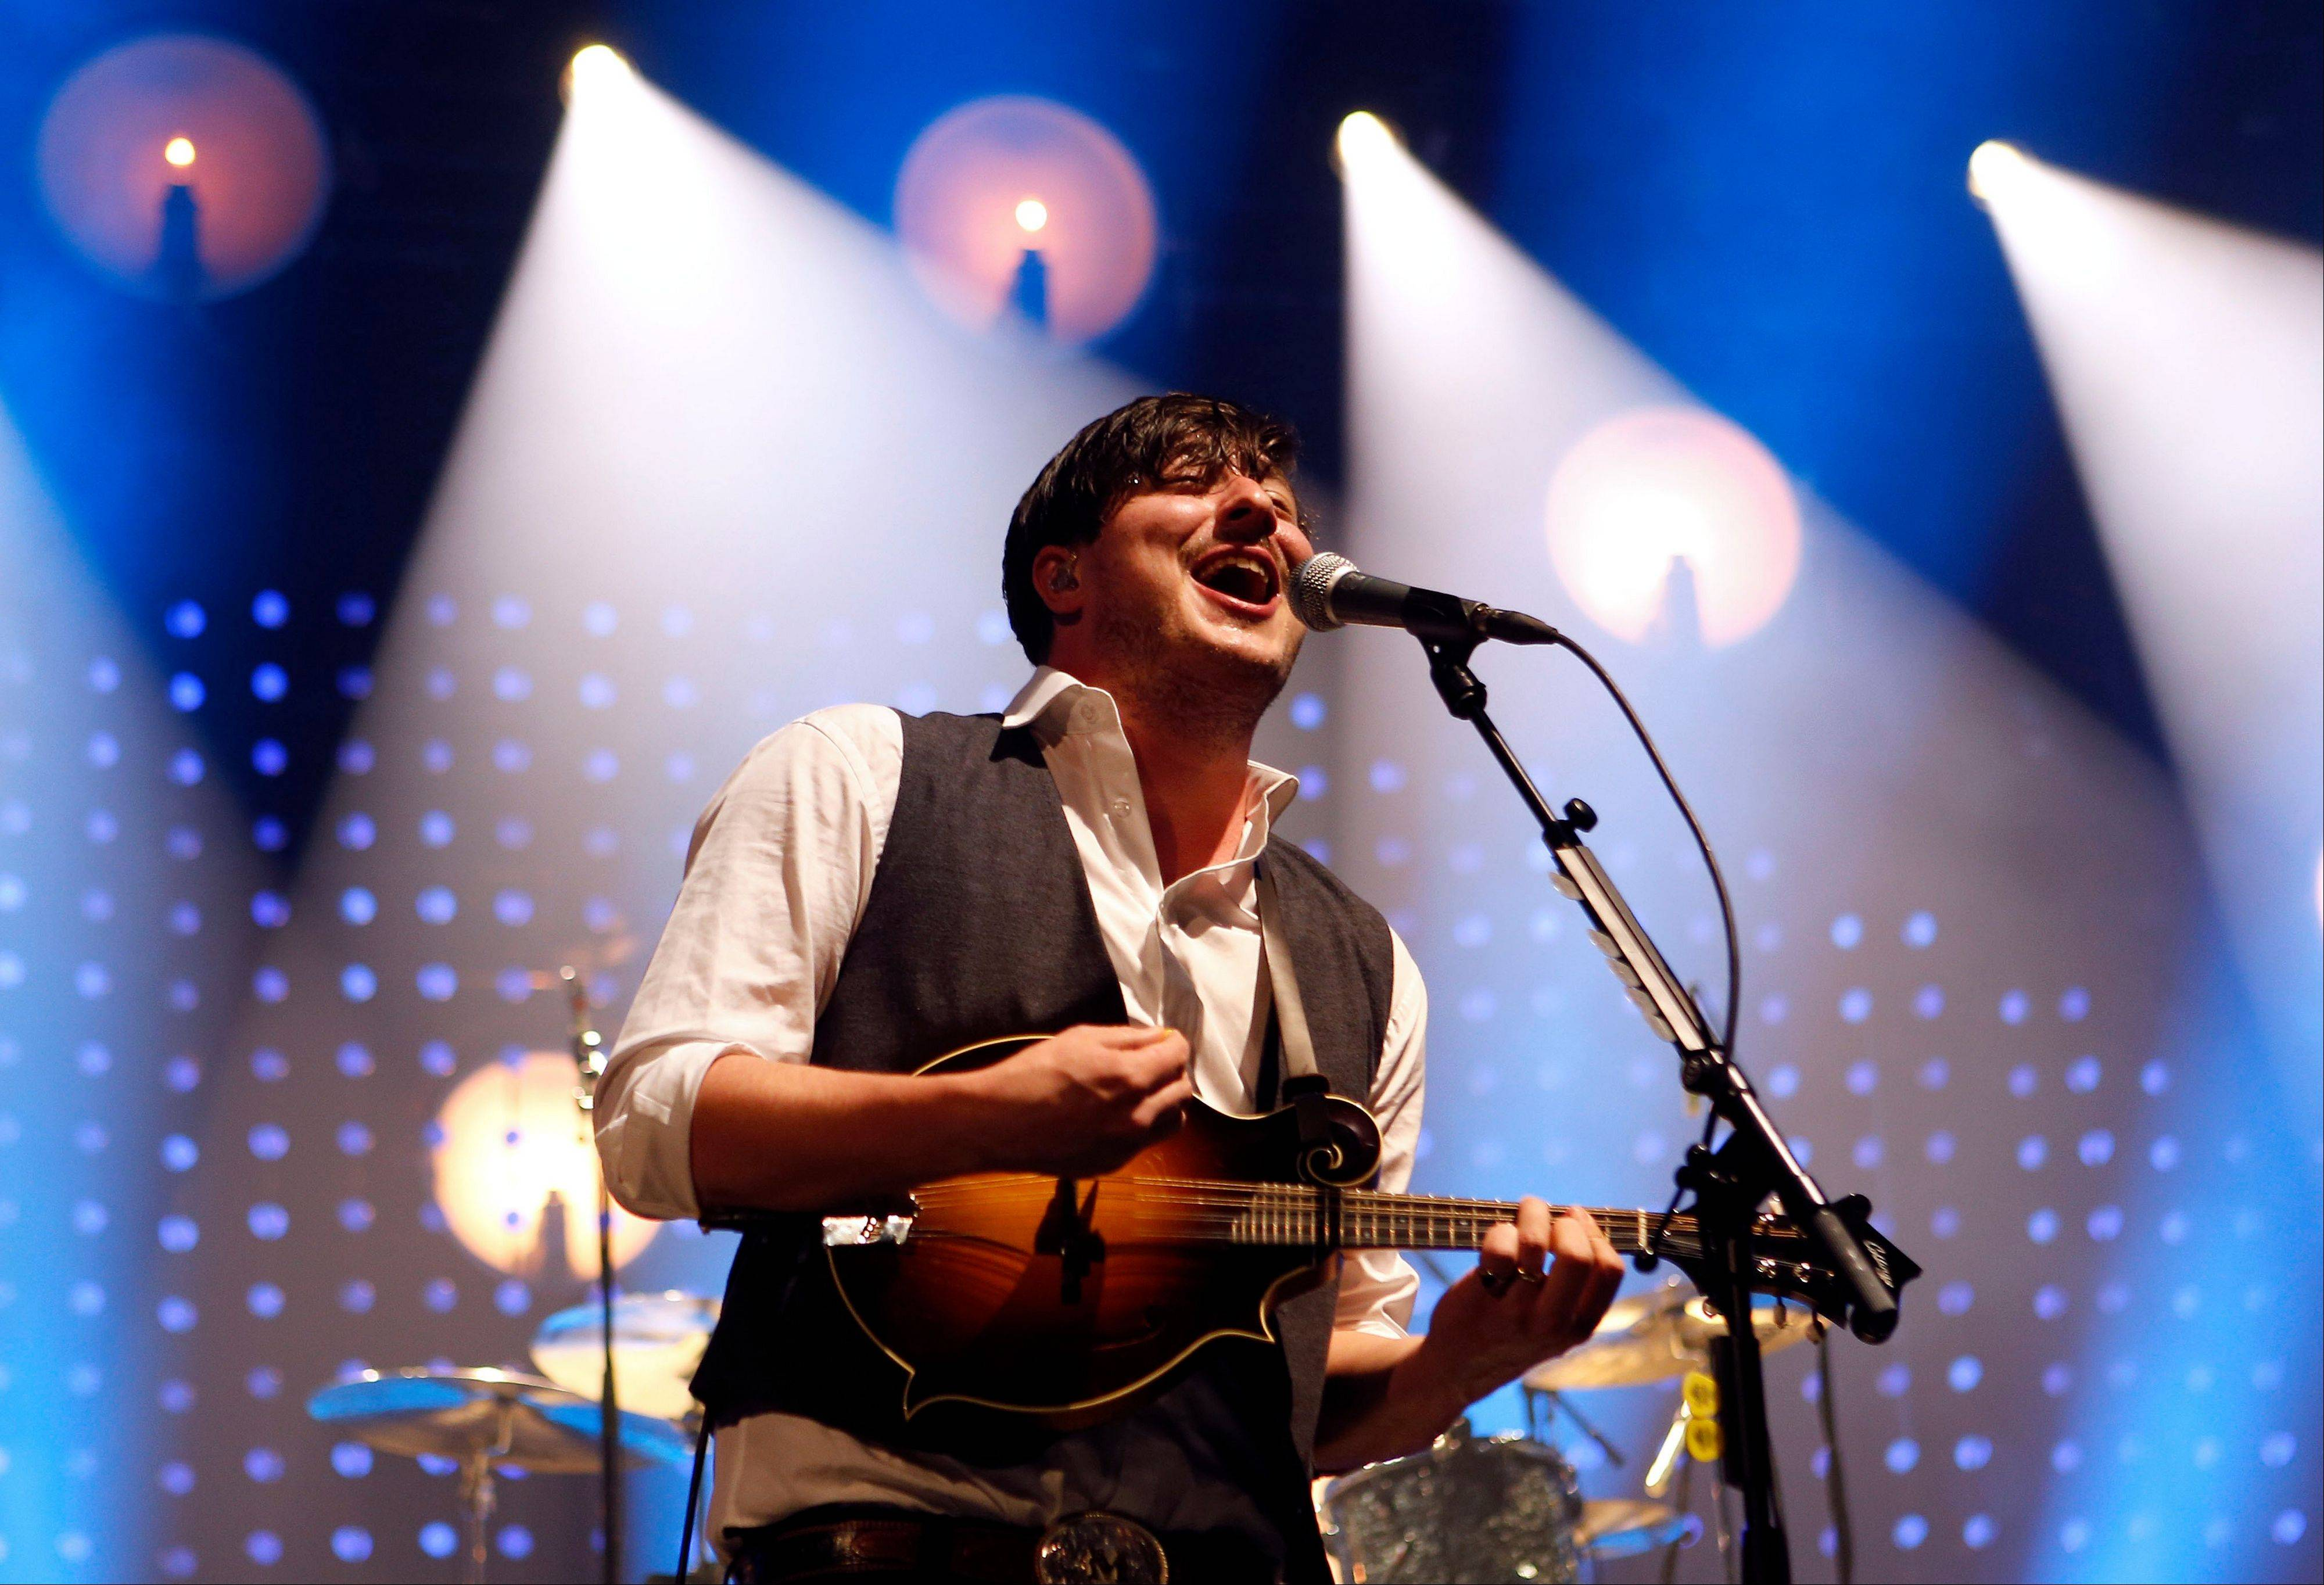 Mumford & Sons will play Lollapalooza in August.